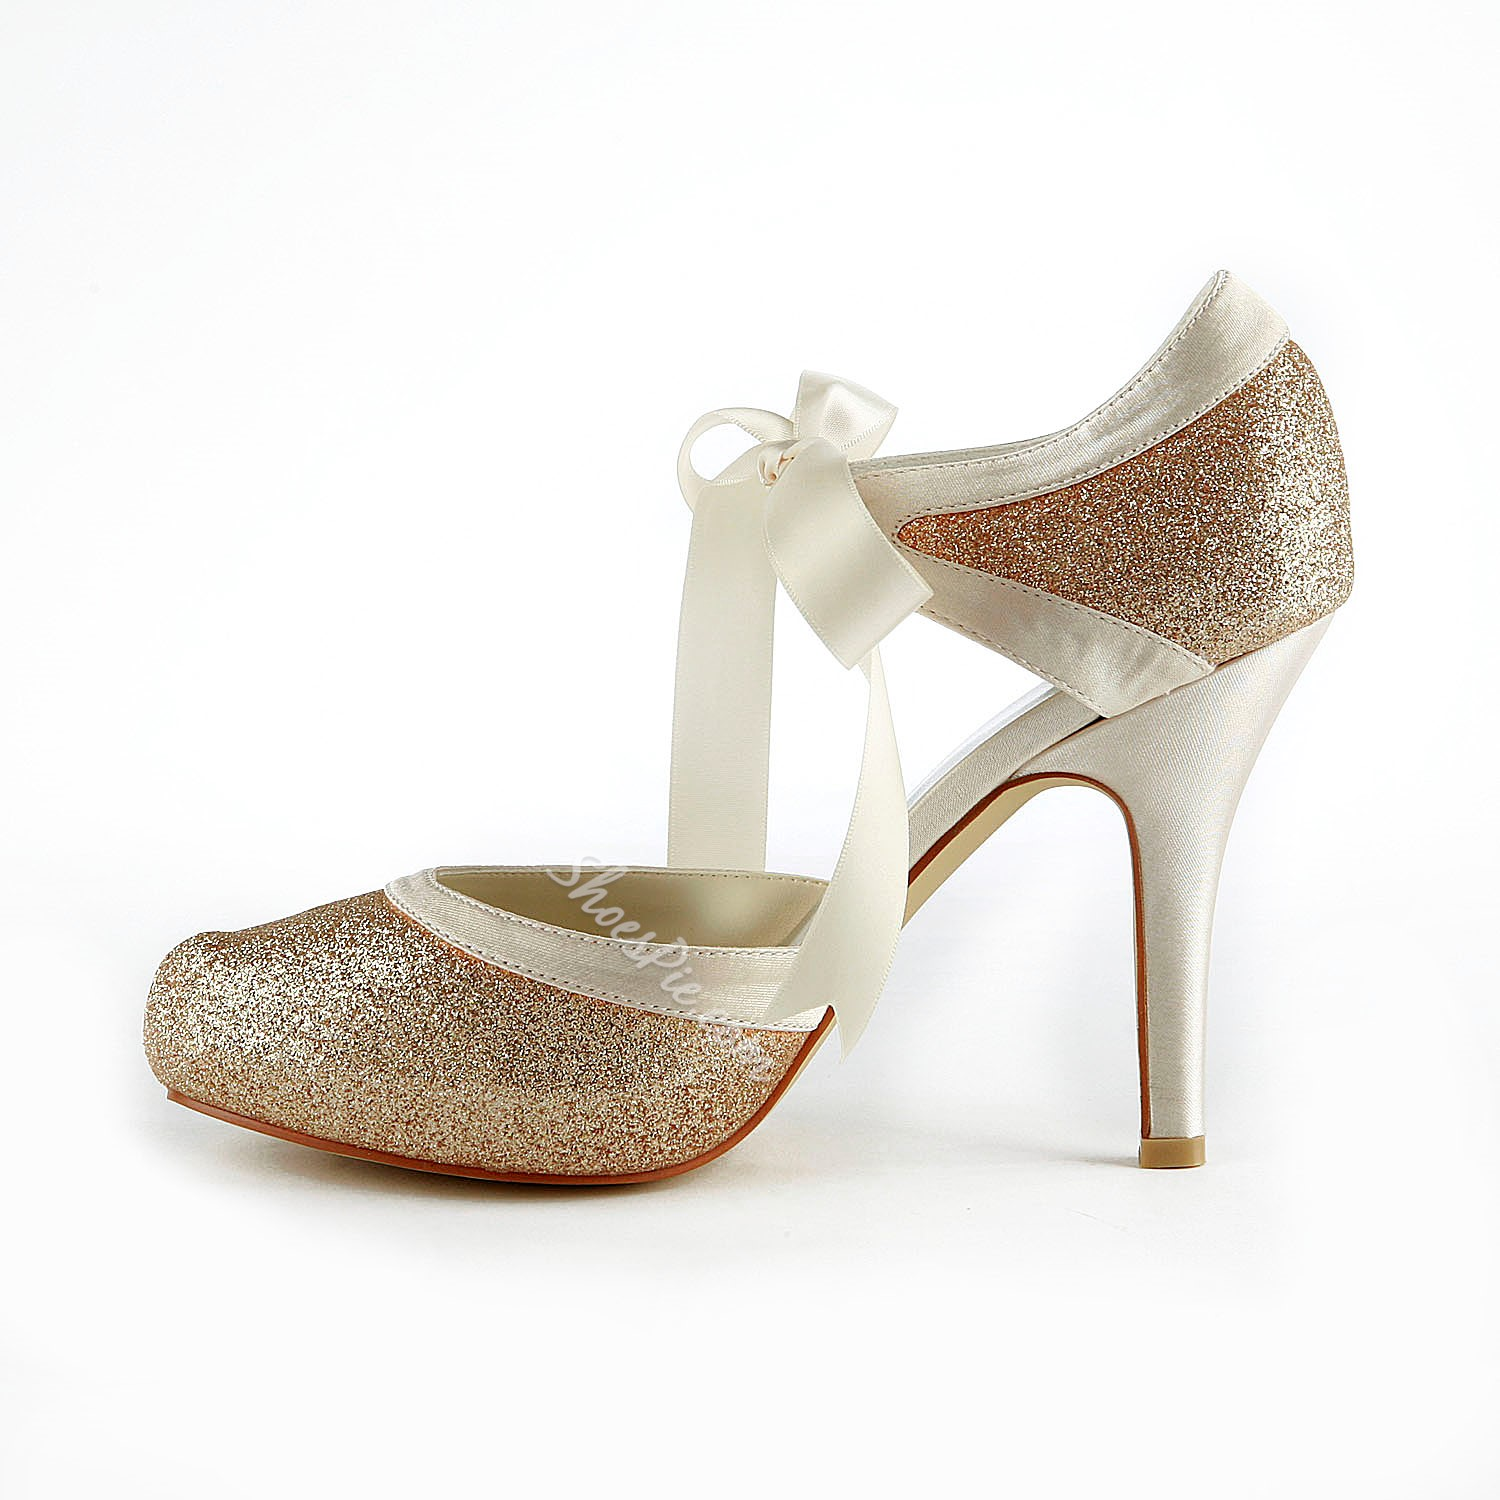 8341cb55d6 New Champagne Closed-toe Wedding Shoes- Shoespie.com